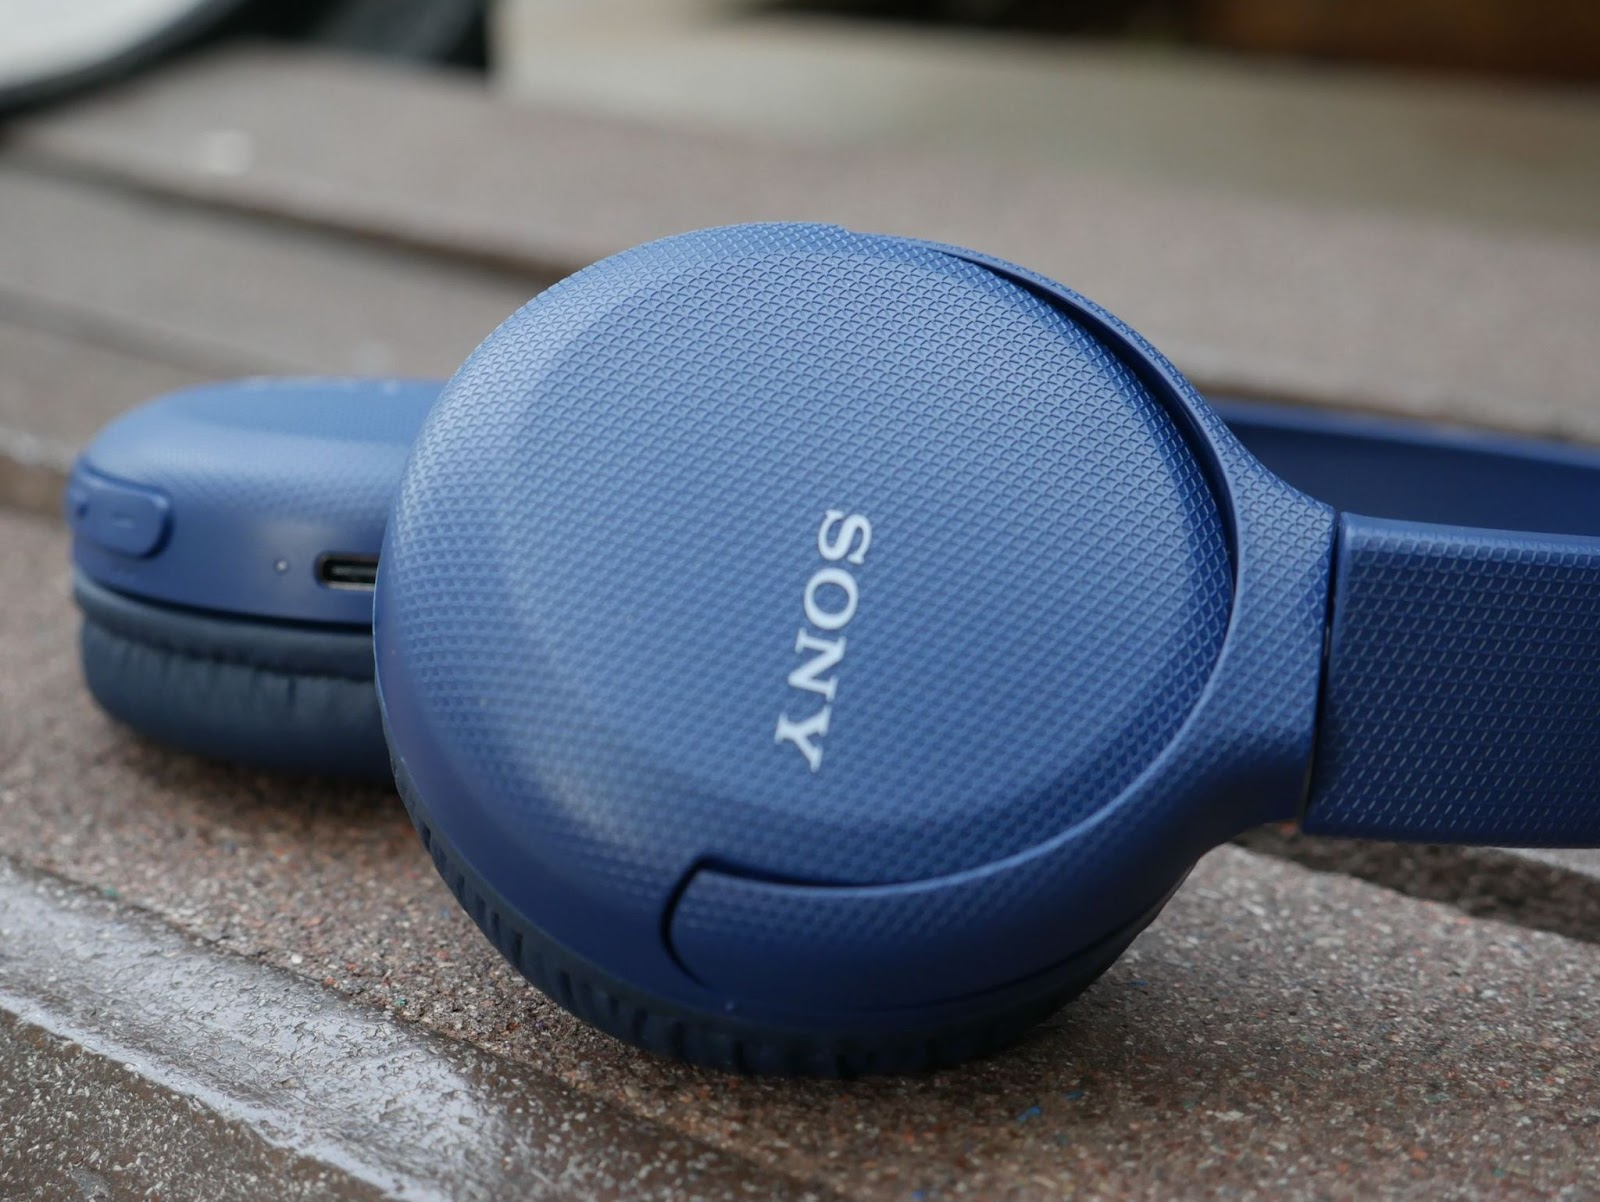 Sony WH-CH510 review in Kenya